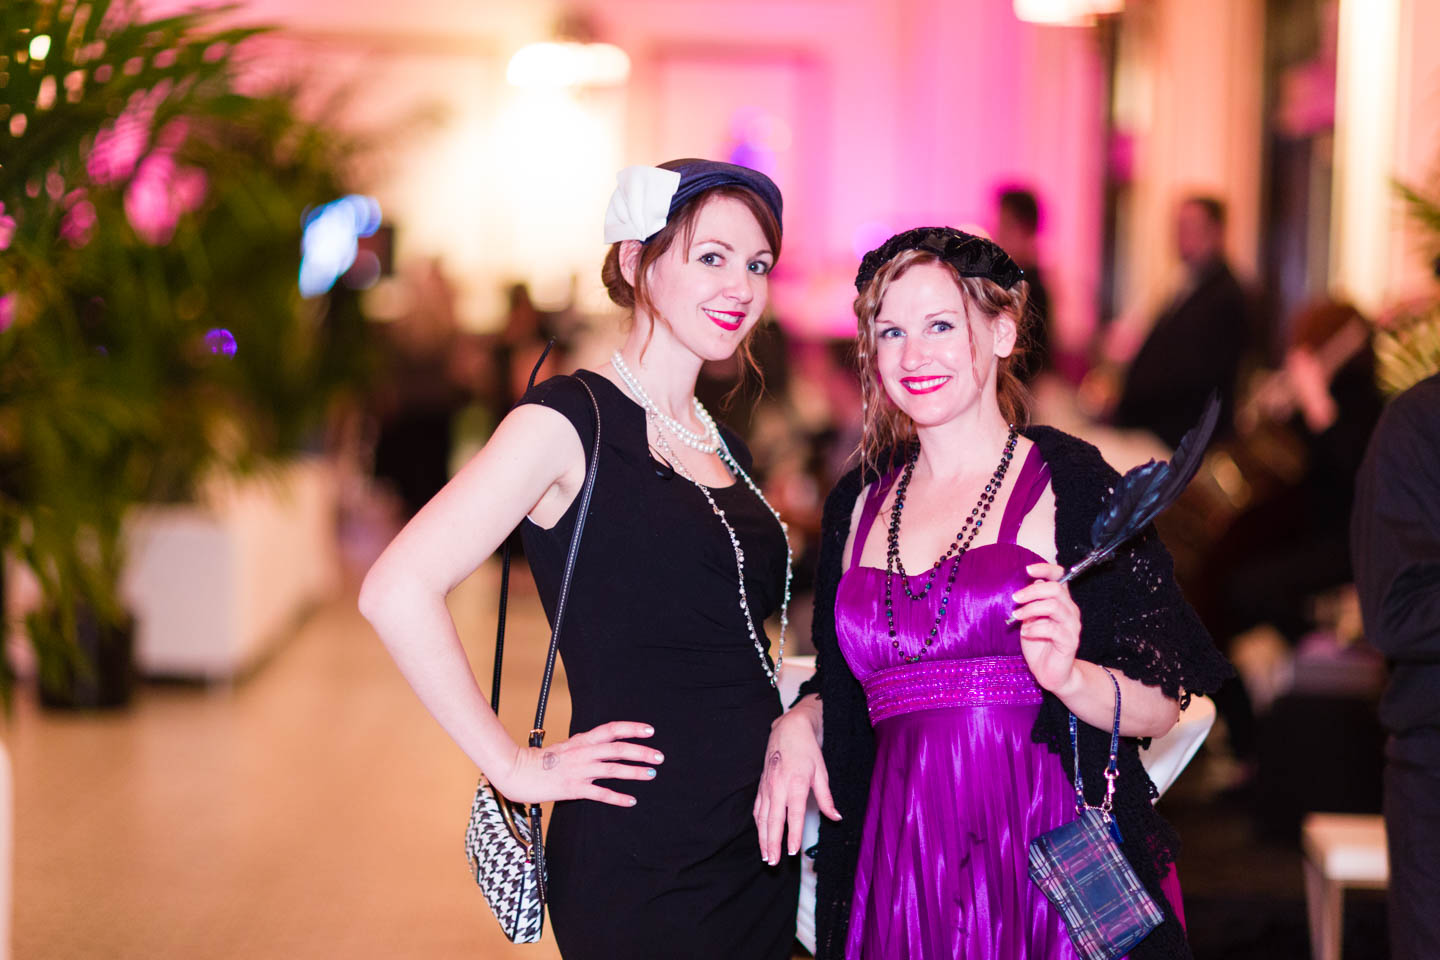 Dressed for a speakeasy in the 1920s